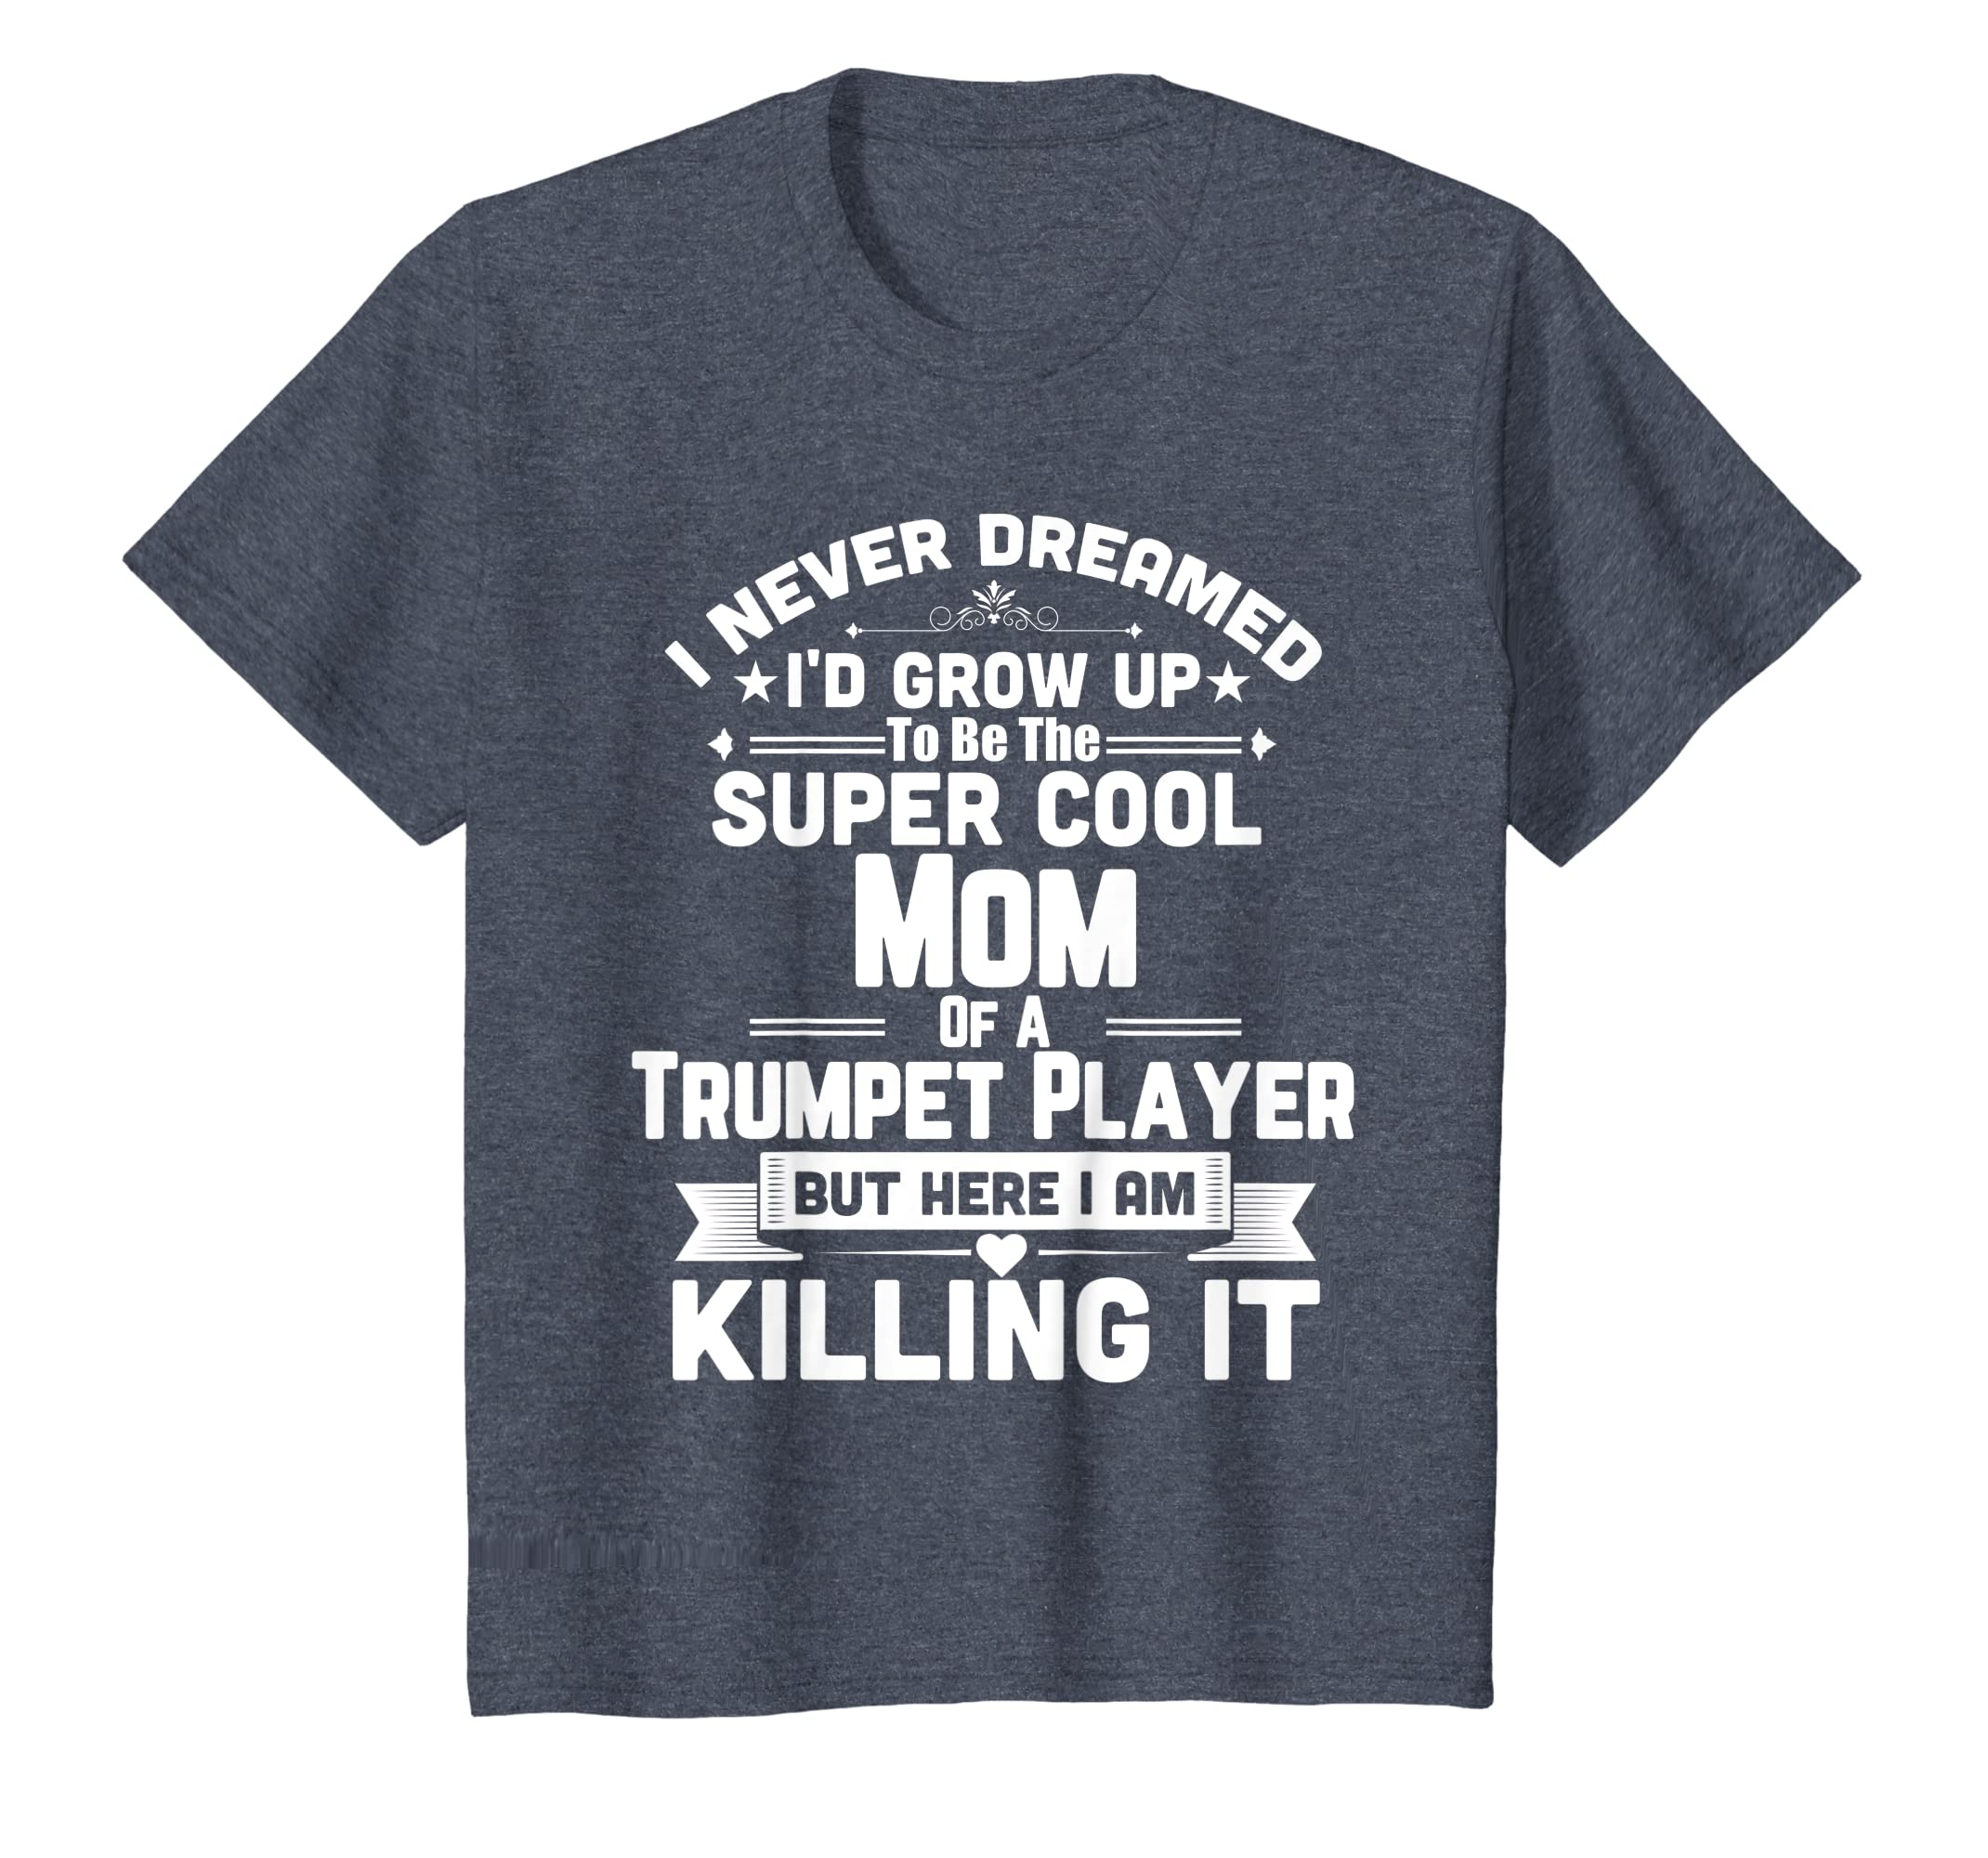 03a20346 Amazon.com: Super Cool Mom Of A Trumpet Player Marching Band T-Shirt:  Clothing